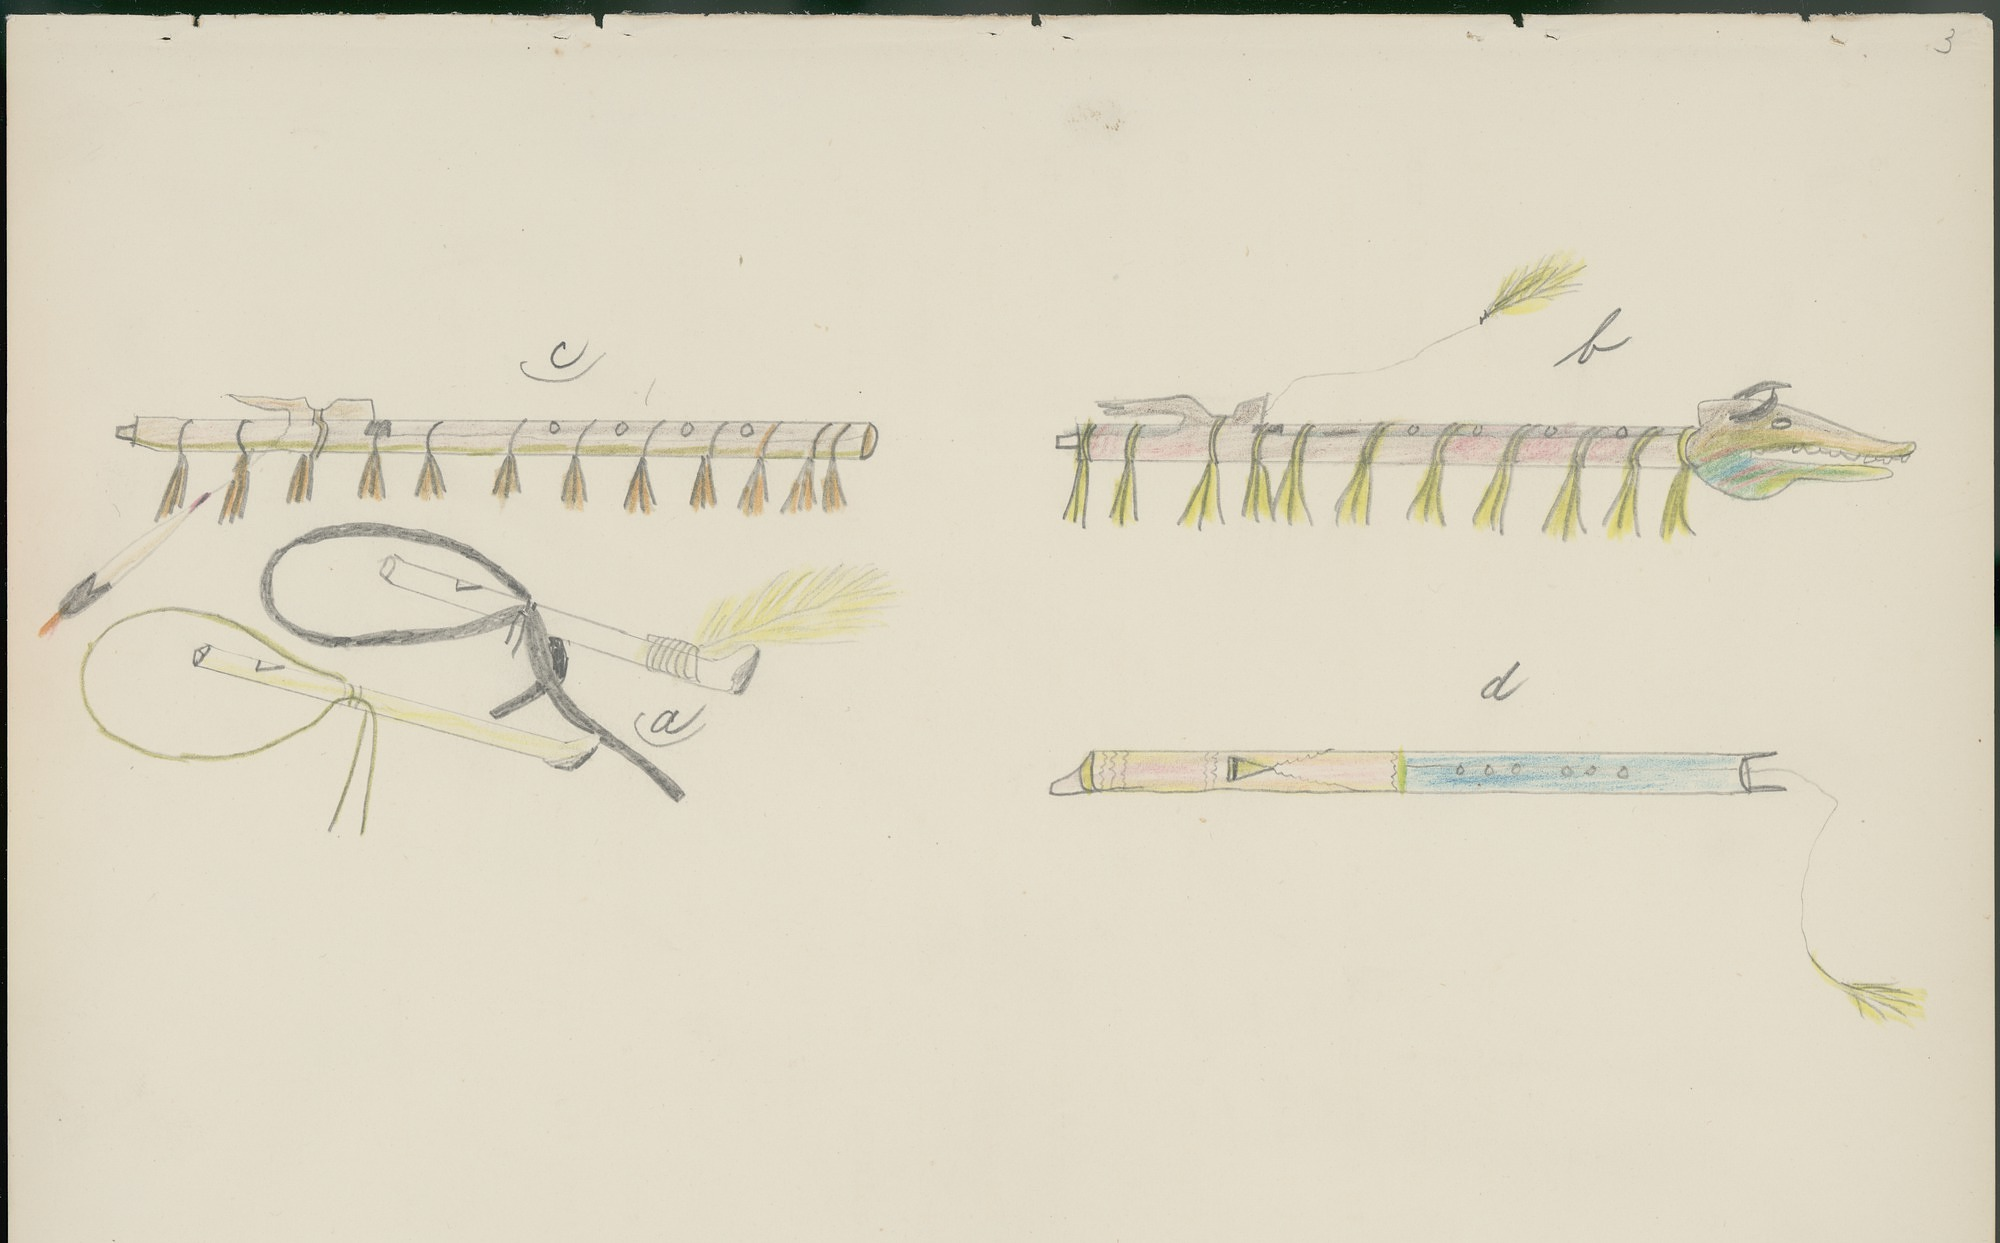 Daniel Little Chief drawing of Cheyenne musical instruments, with descriptive text by Albert Gatschet, 1891 February